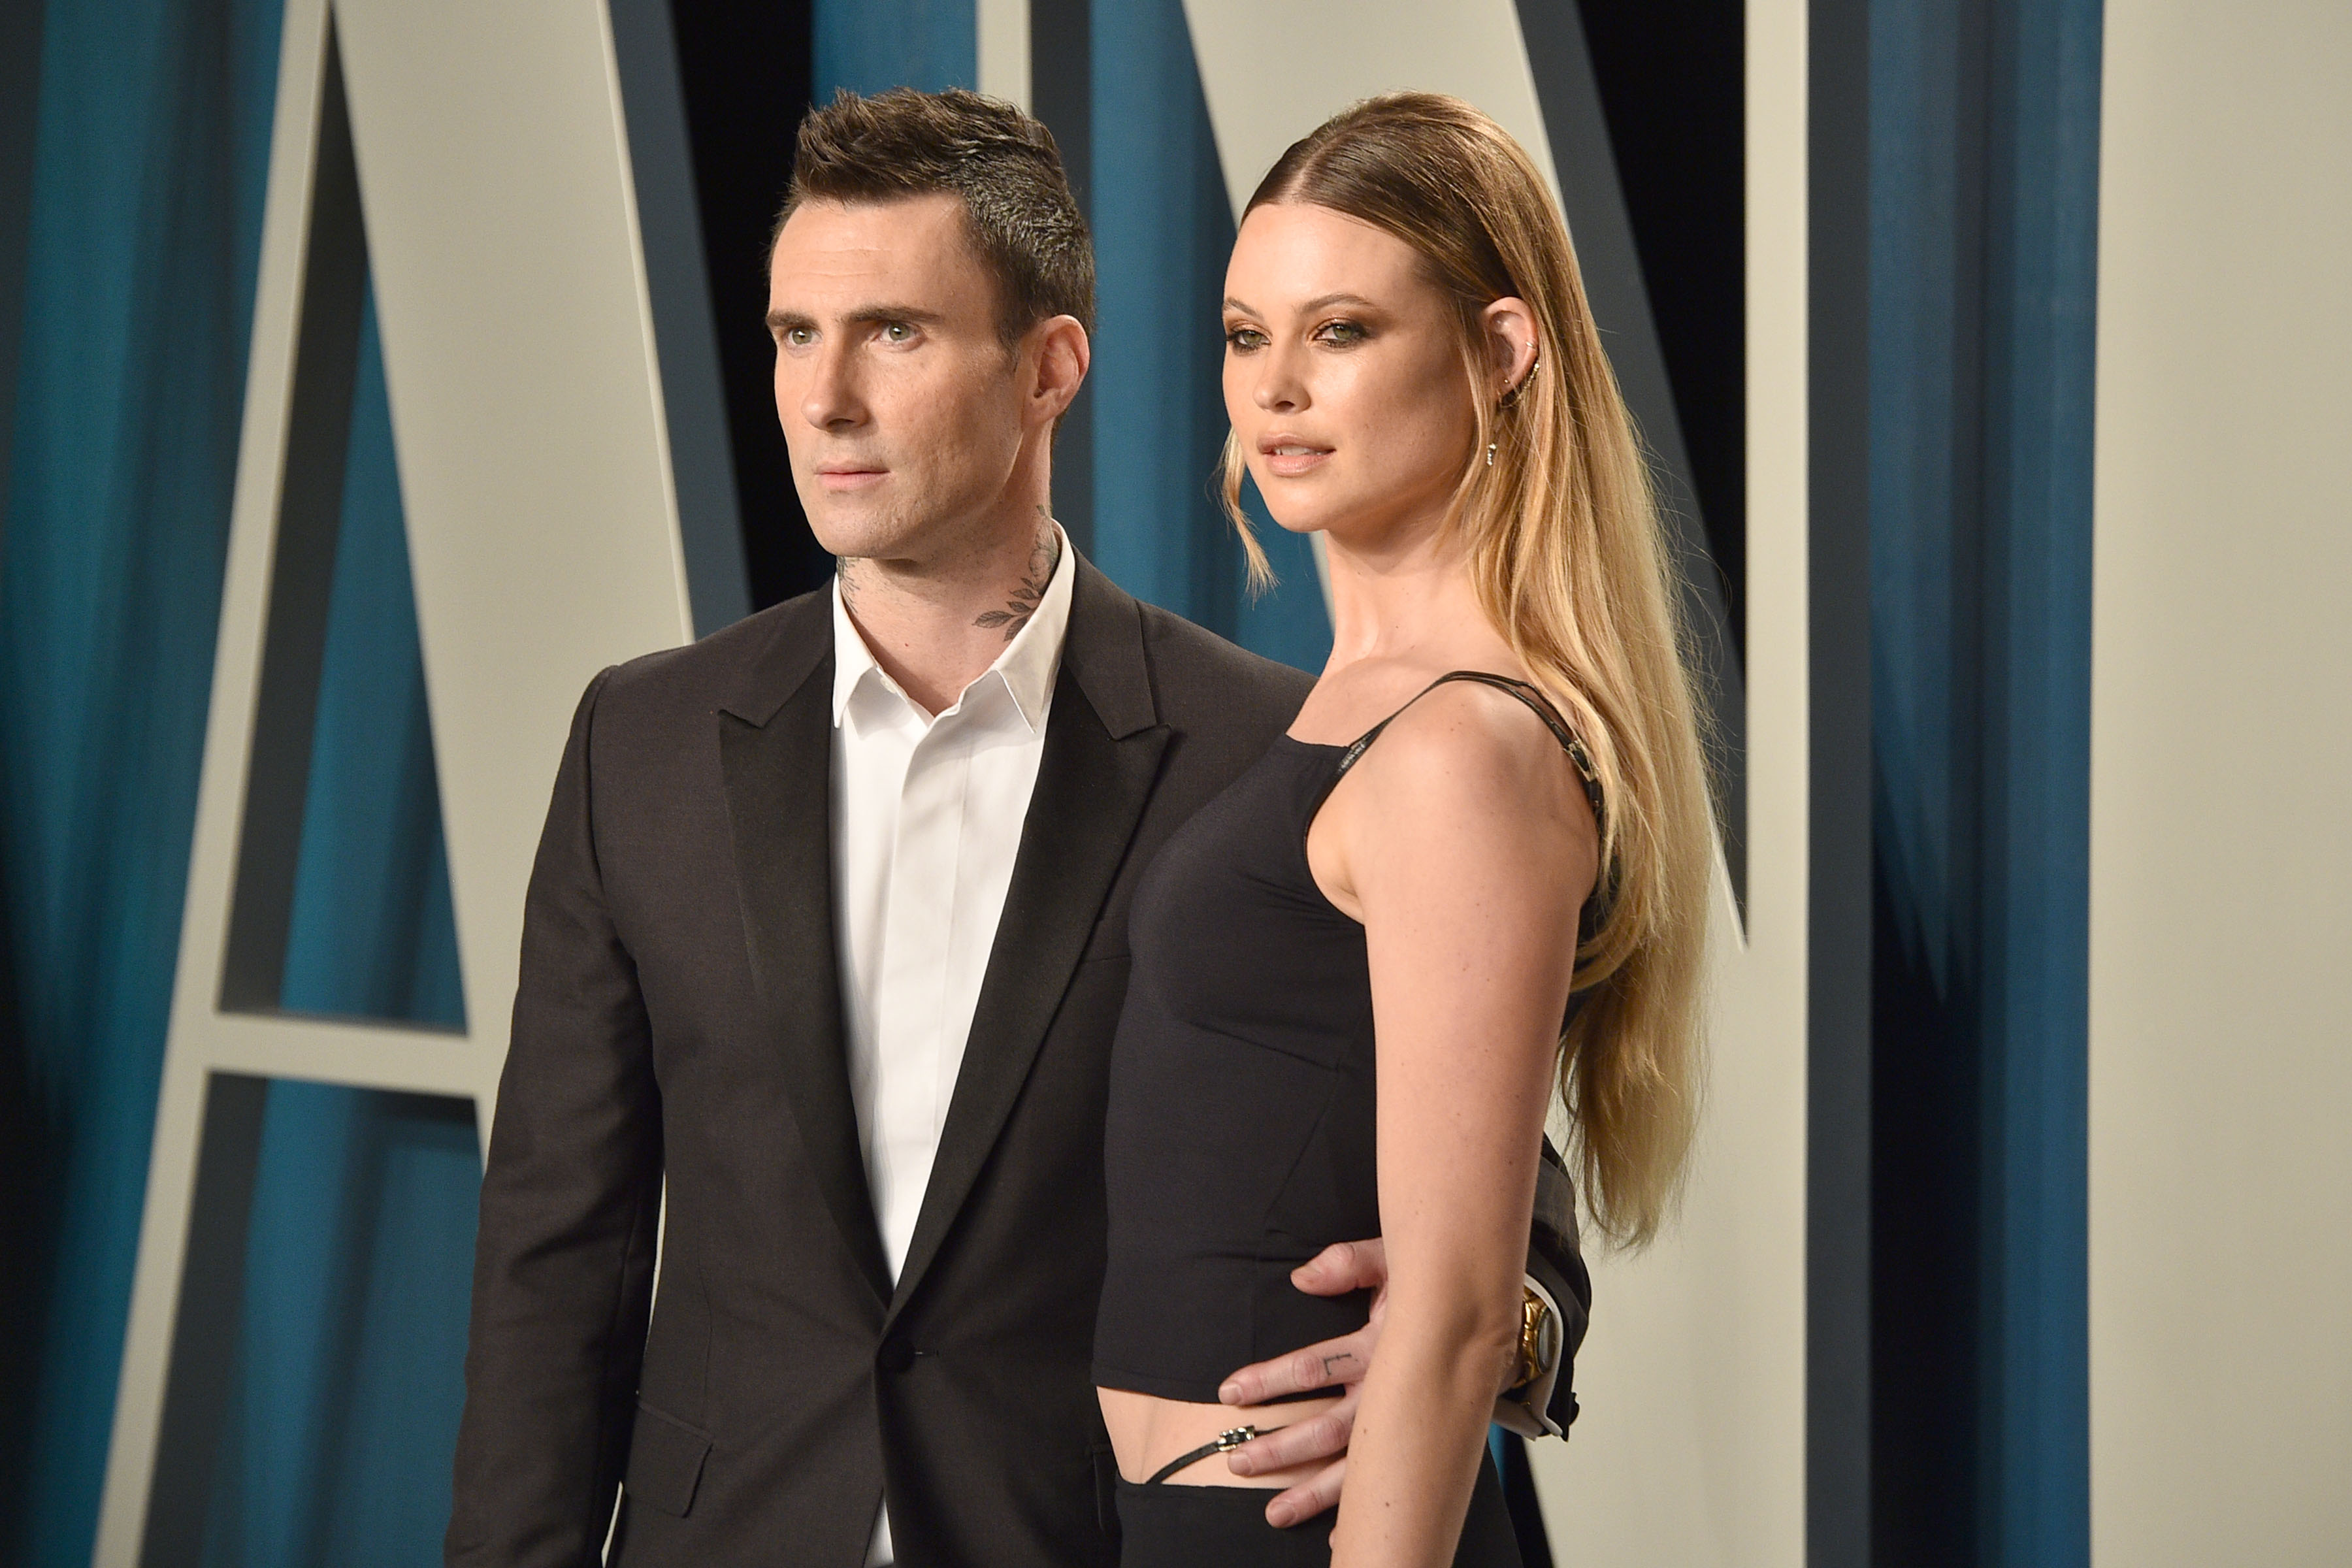 Adam Levine and Behati Prinsloo attend the 2020 Vanity Fair Oscar Party at Wallis Annenberg Center for the Performing Arts on February 09, 2020 in Beverly Hills, California. (Photo by David Crotty/Patrick McMullan via Getty Images)